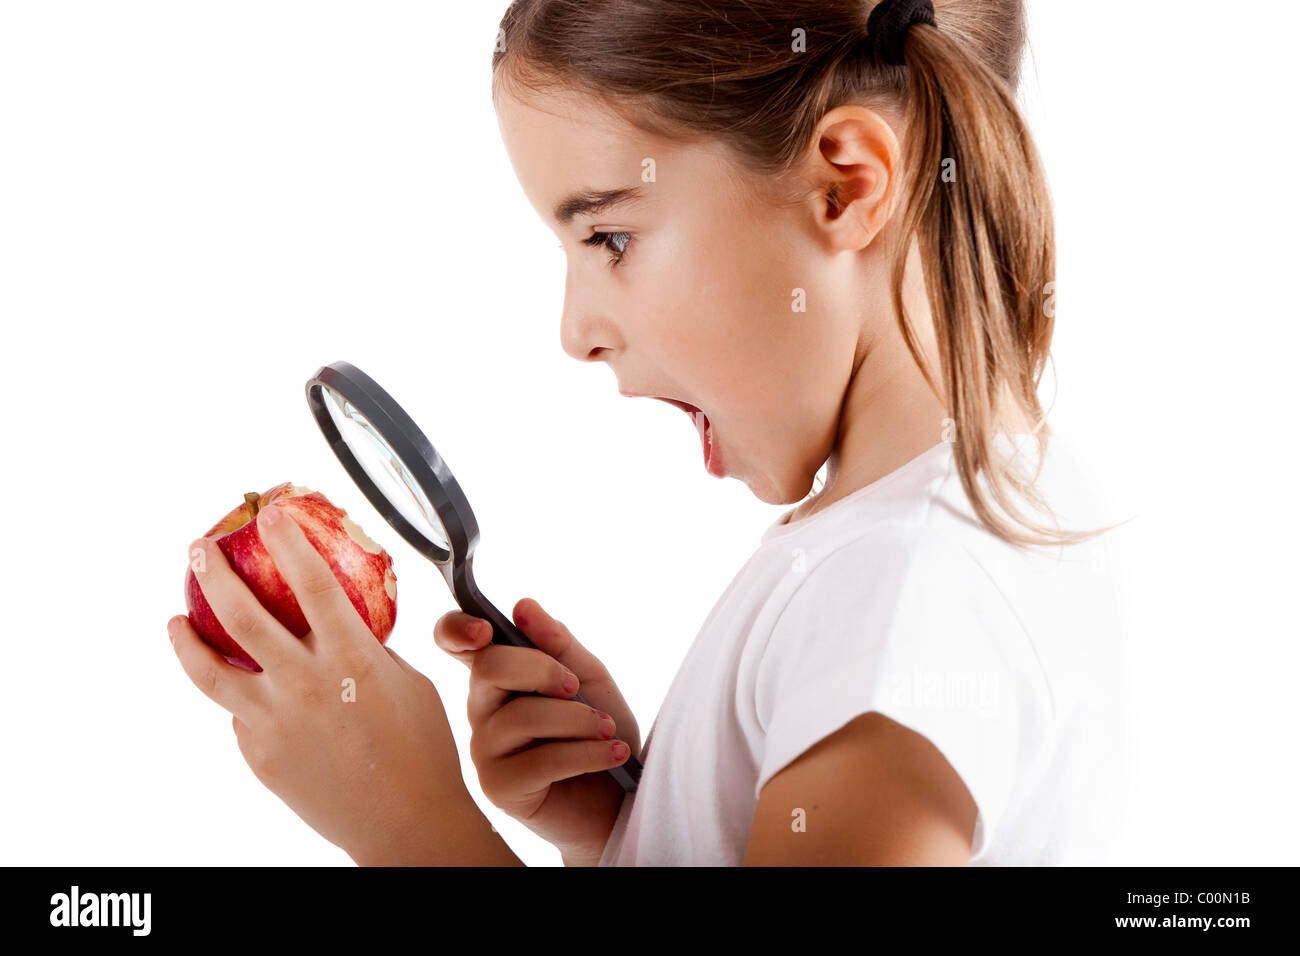 Little girl with a magnifying glass inspecting microbes on a red apple - Stock Image